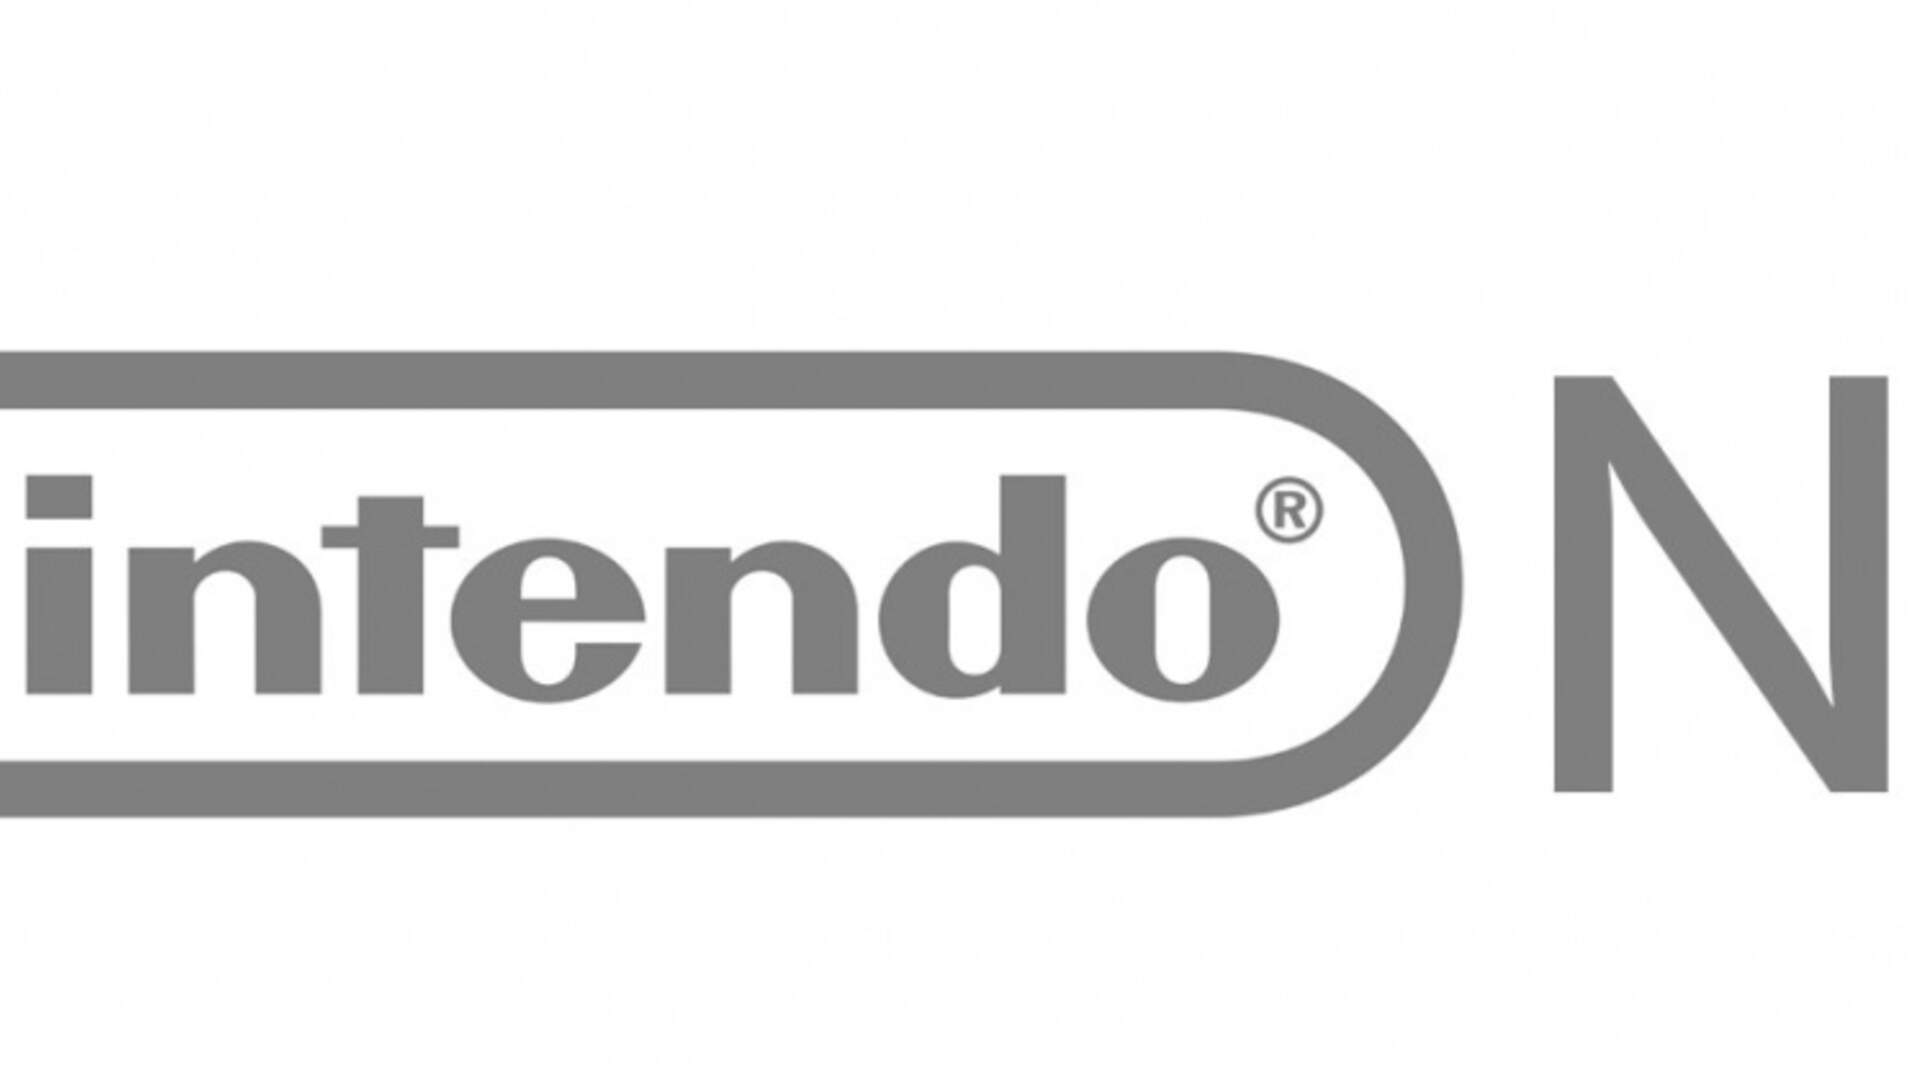 Nintendo Not Selling NX at a Loss, Focusing Hard on Mobile